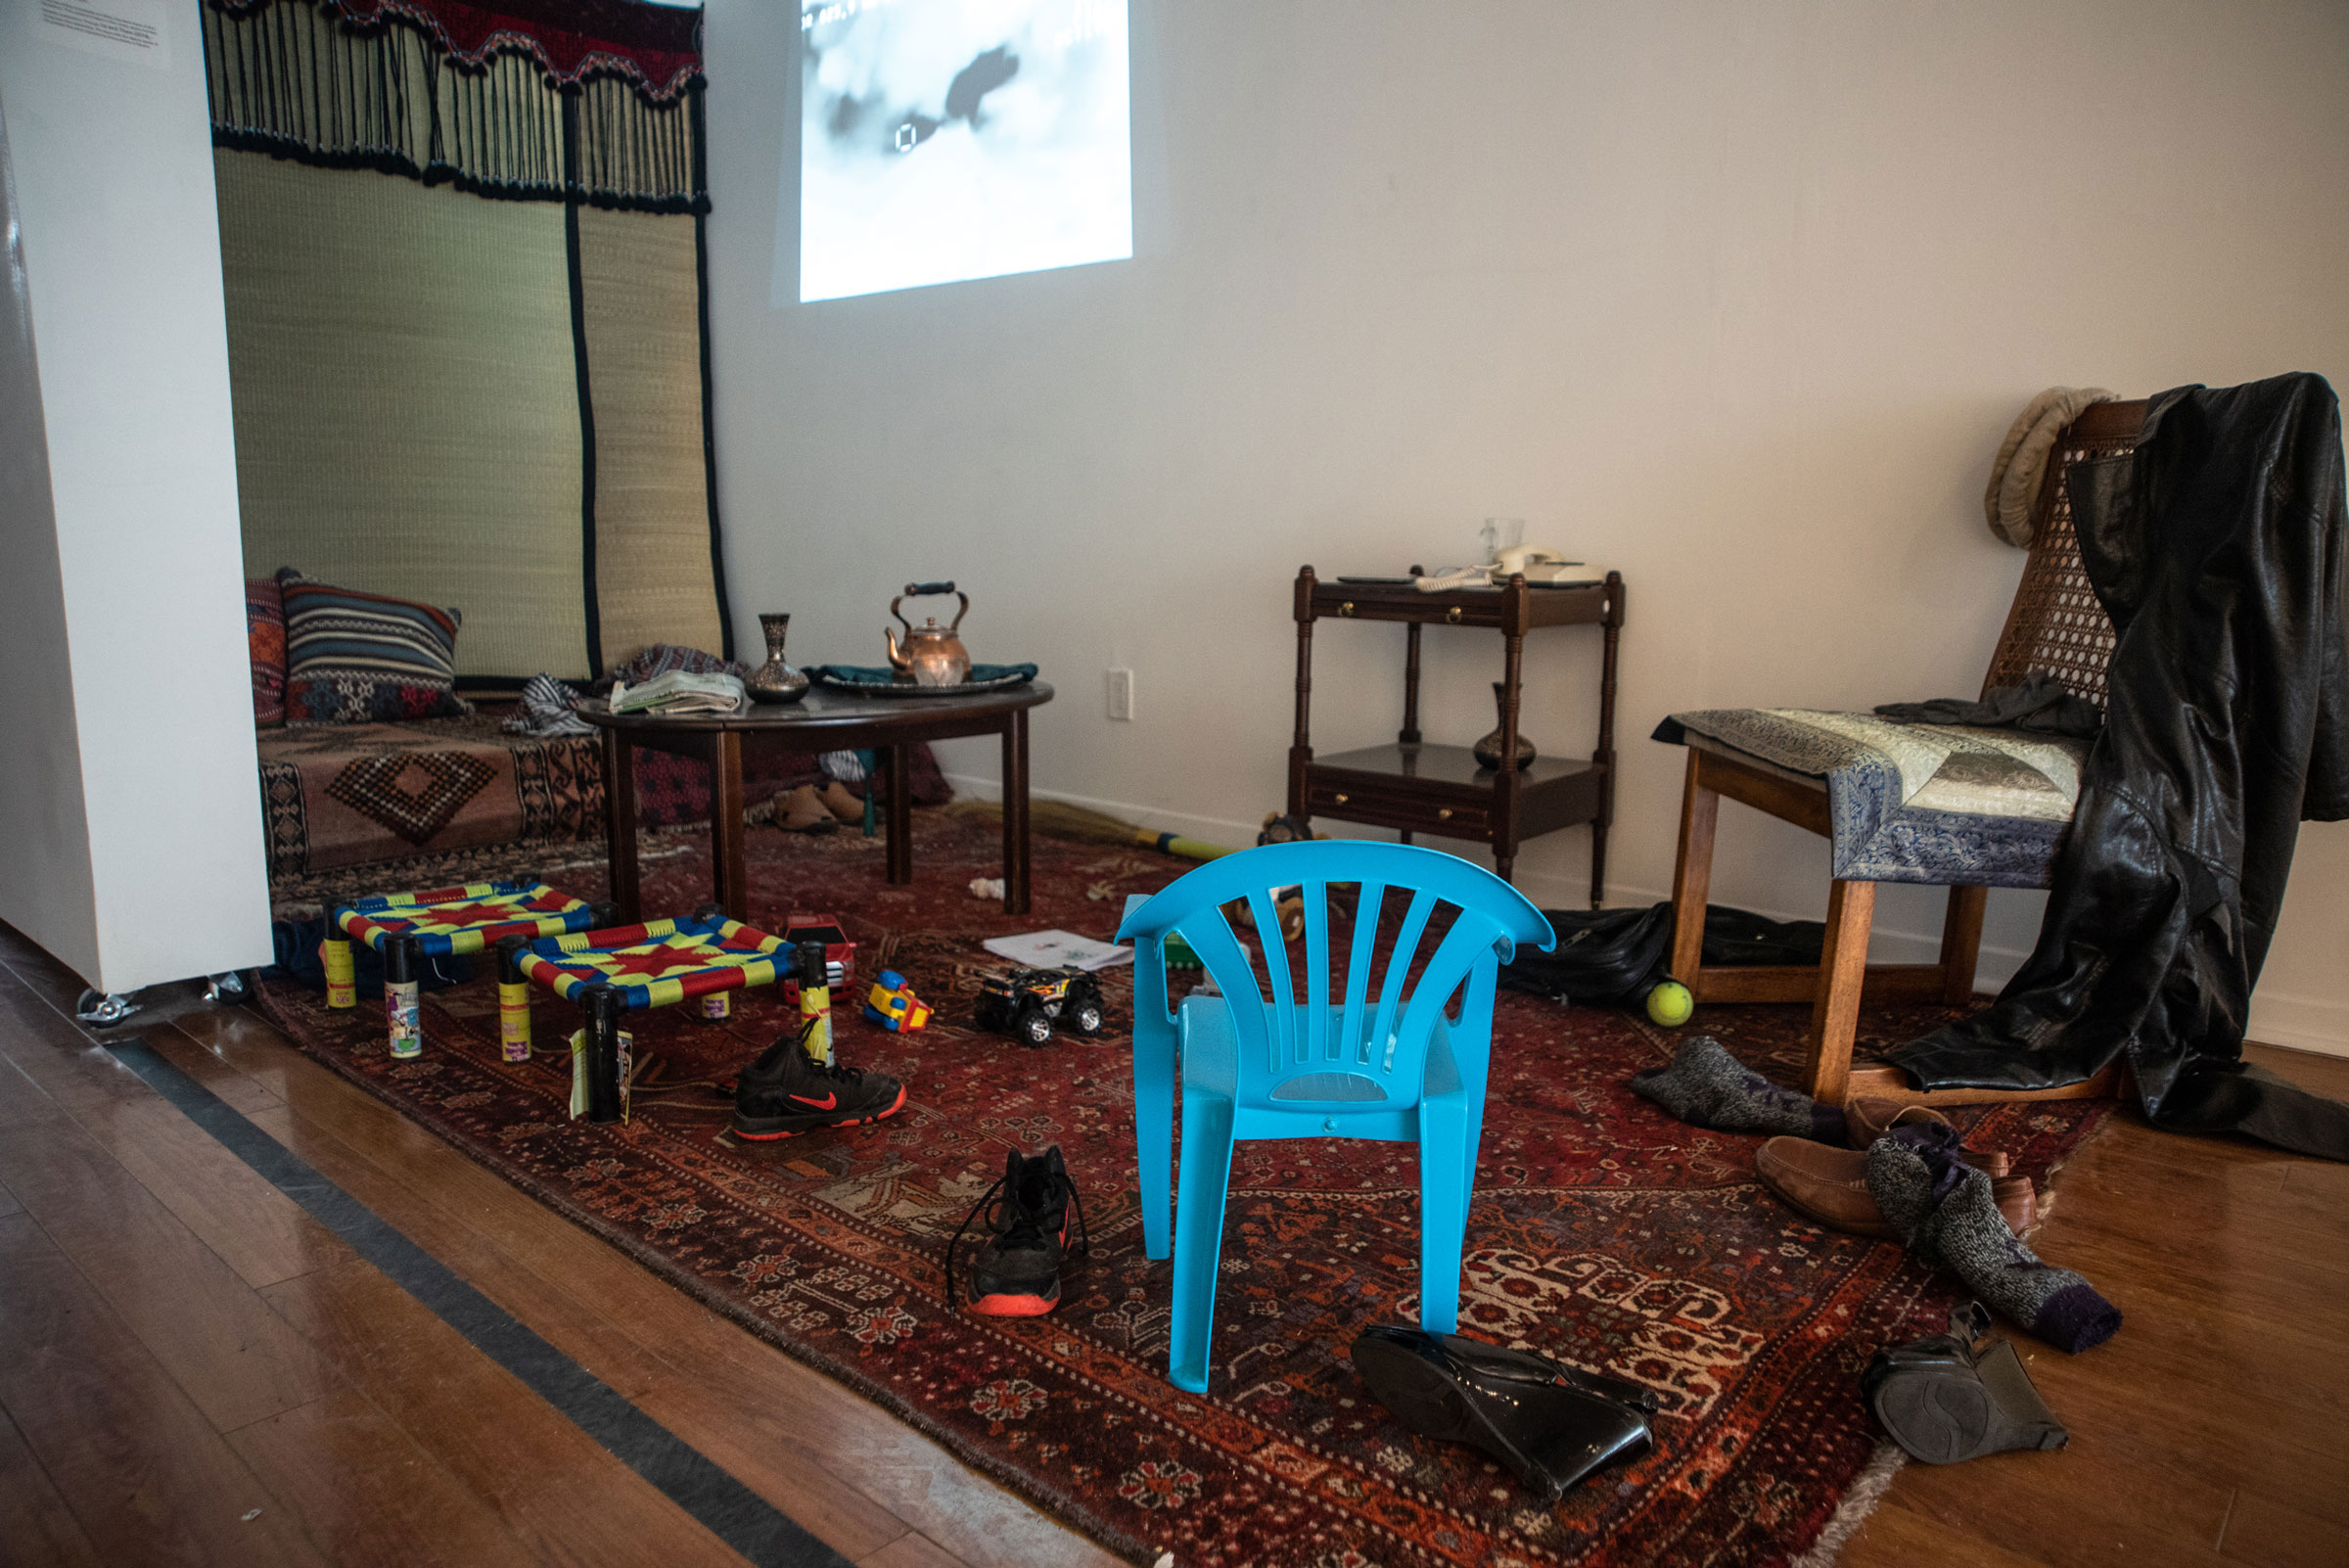 a photo captures an empty home, full of chairs and tables, but without any people